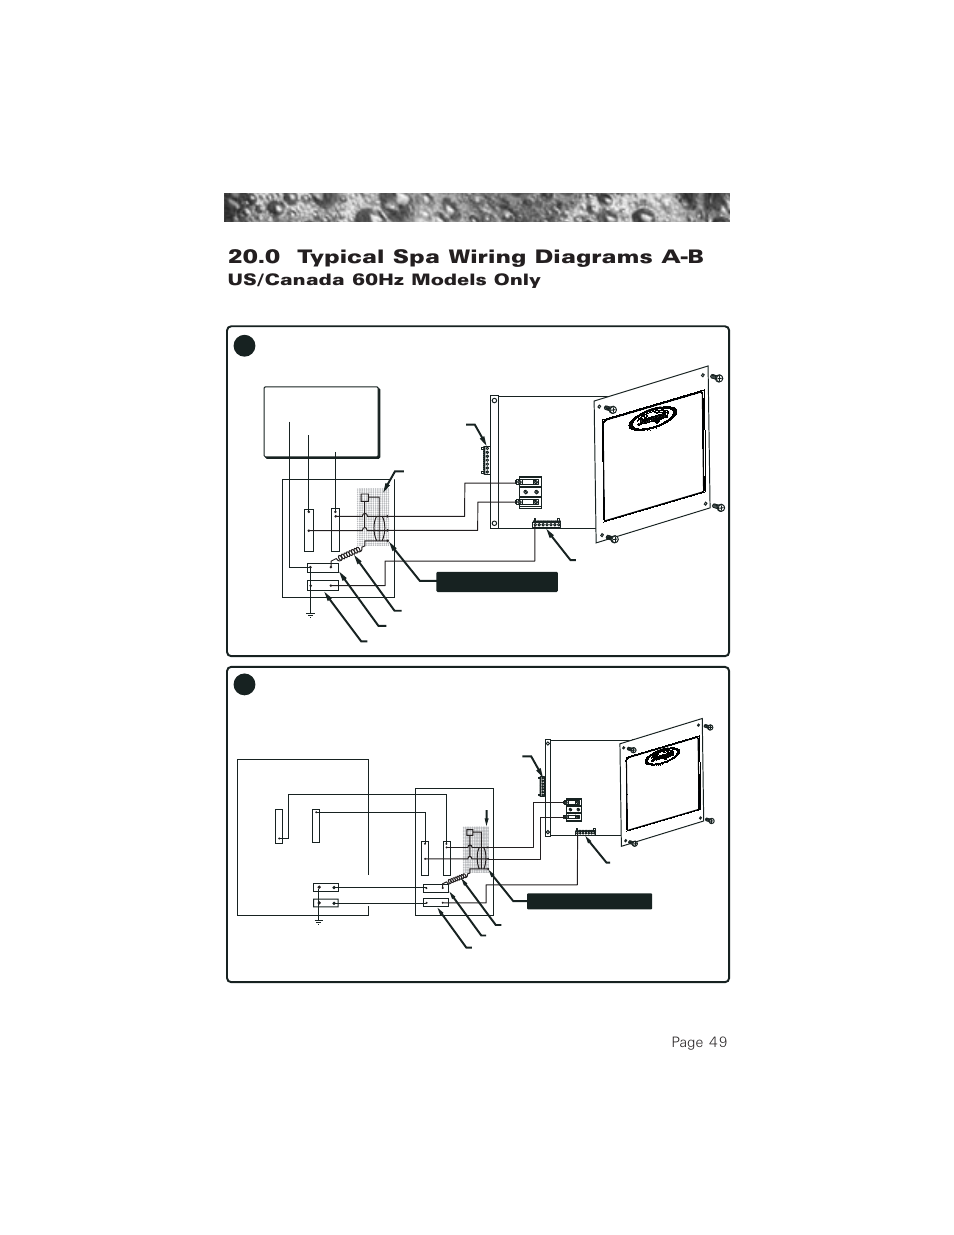 0 Typical Spa Wiring Diagrams A B 60hz Models 2wire Gfci Diagram Us Canada Only Jacuzzi Protech Lcd User Manual Page 53